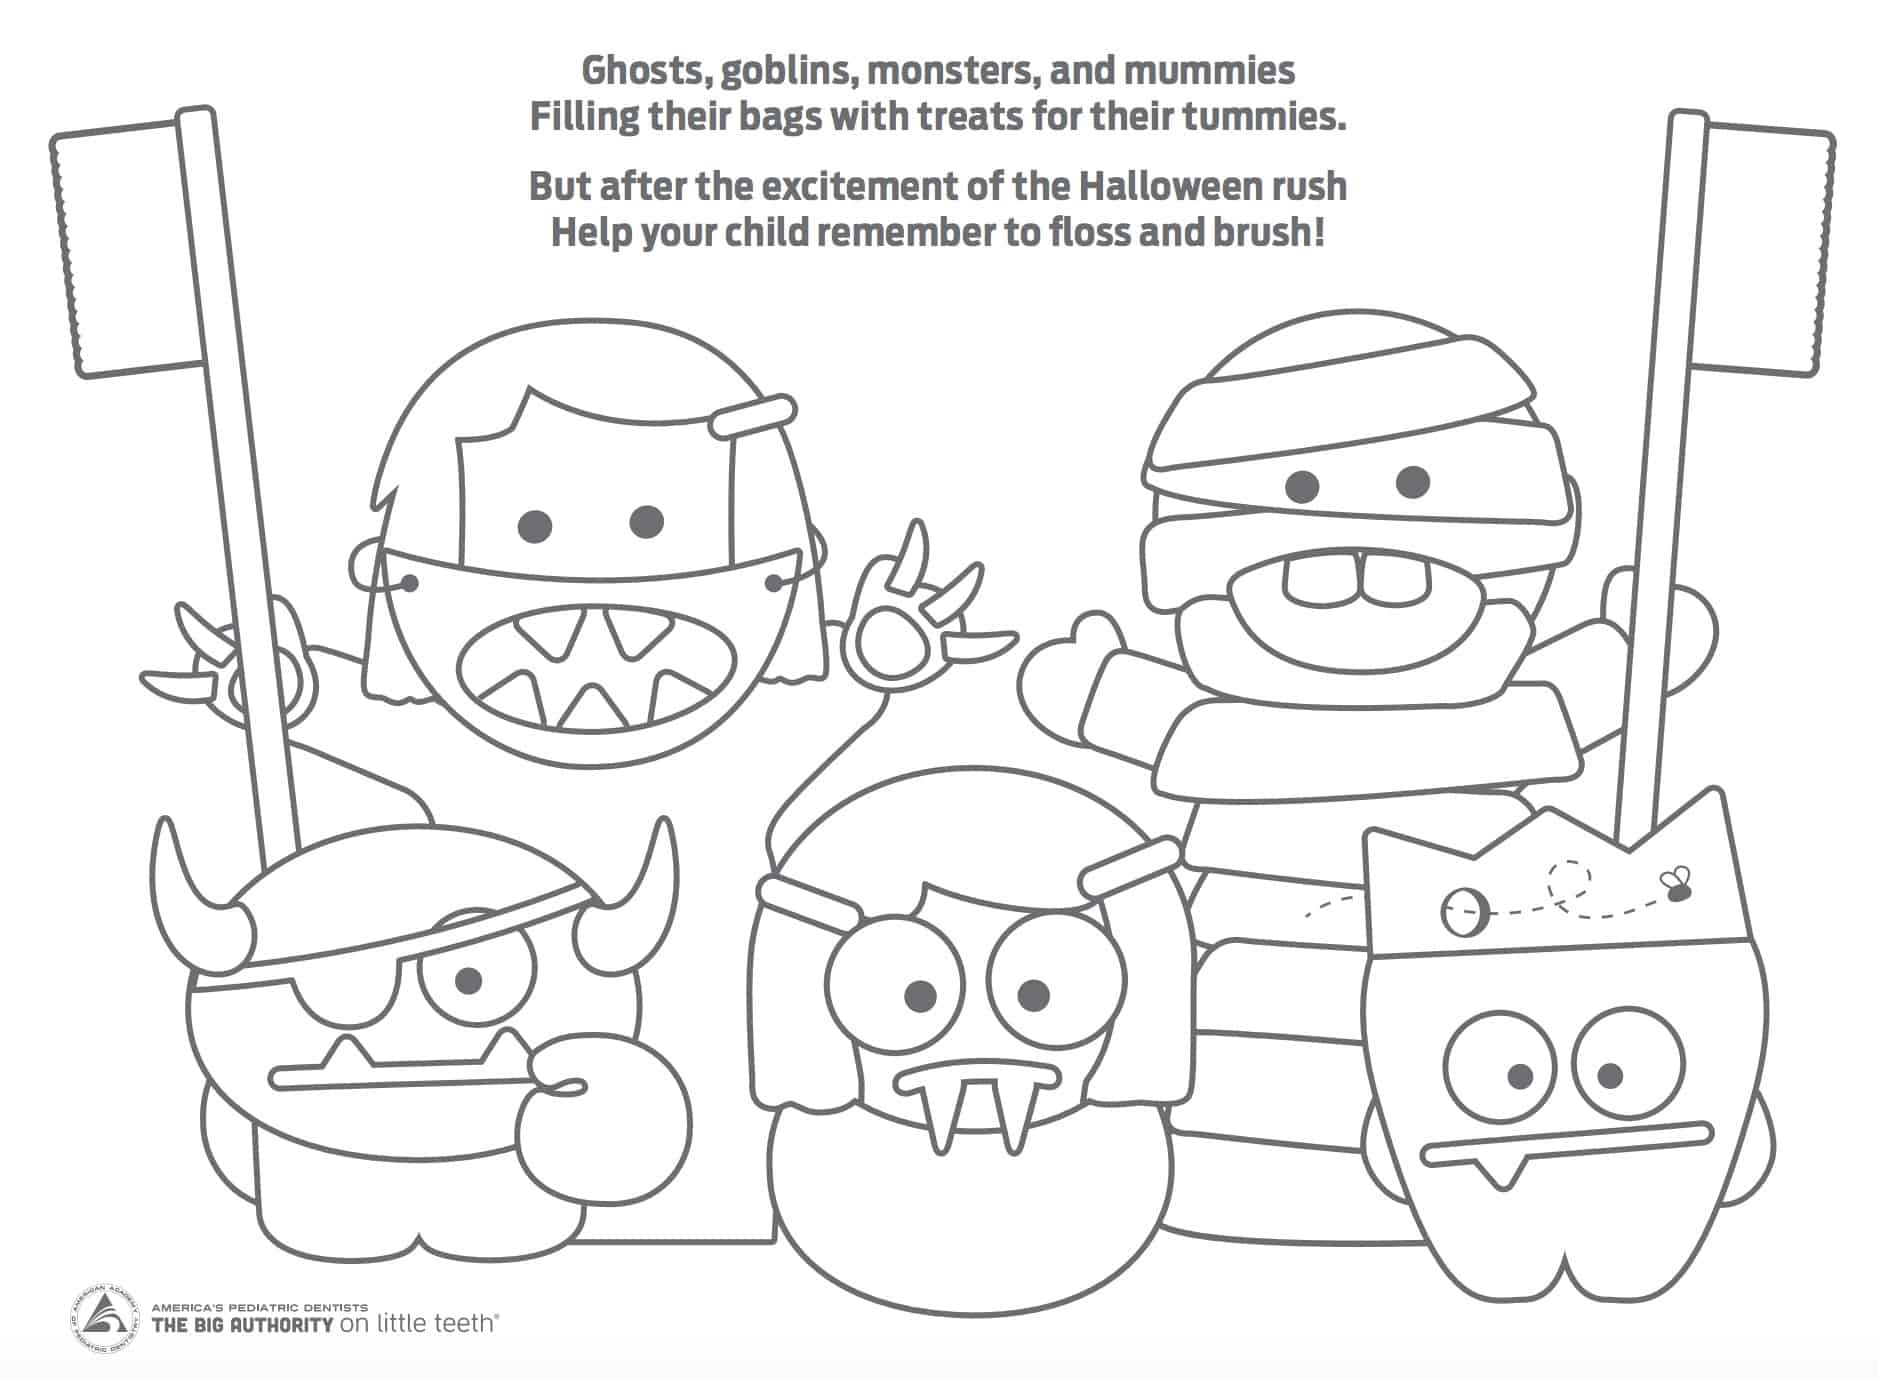 Halloween Mouth Monsters Coloring Sheet